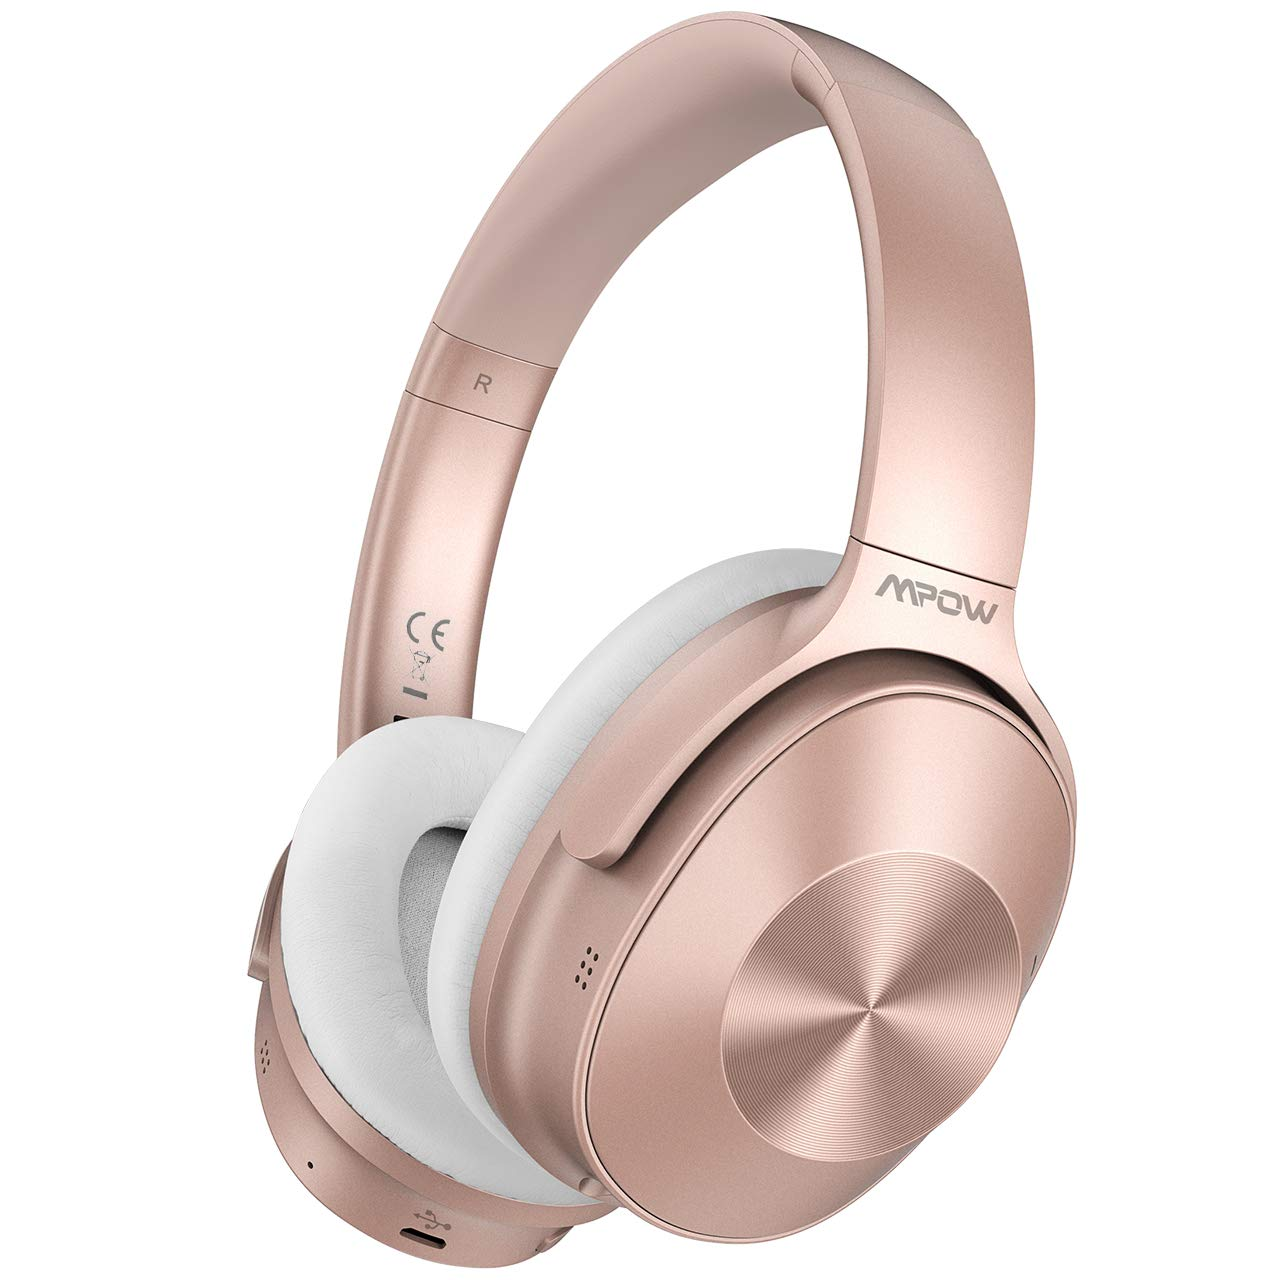 Mpow Hybrid Noise Cancelling Headphones [Upgraded] Bluetooth Headphones, Over-Ear Wireless Headphones with Stereo Sound, 30H Playtime for Travel Work Cellphone